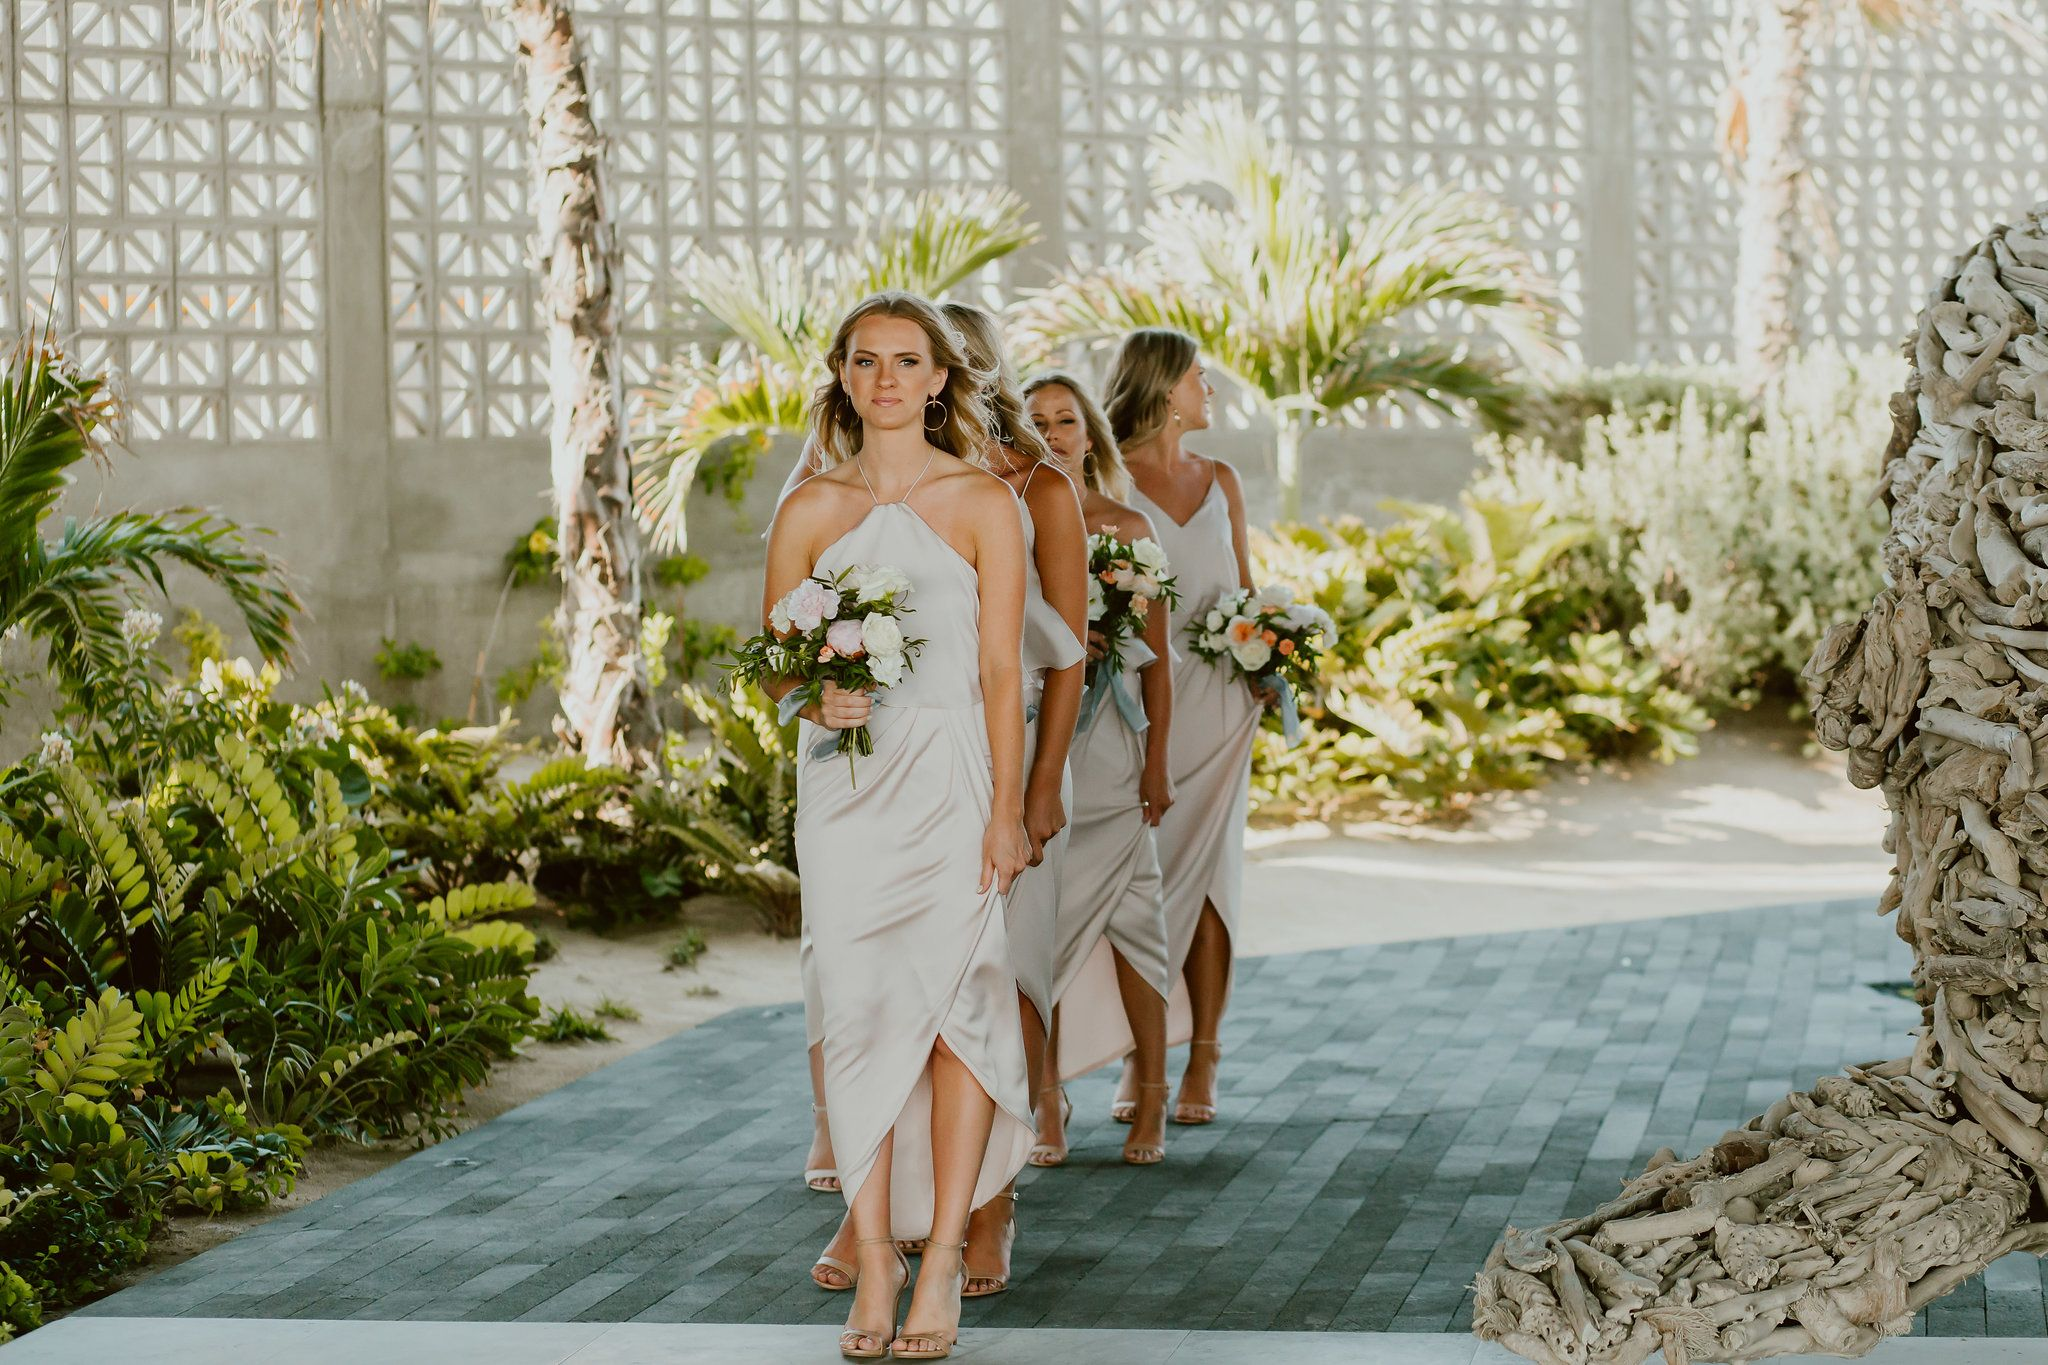 Bridesmaids walking down the aisle with their beautiful bouquets designed by Lola from Florenta Design. Photo was taken by Ana and Jerome Photography at The Cape Los Cabos, by Thompson Hotels